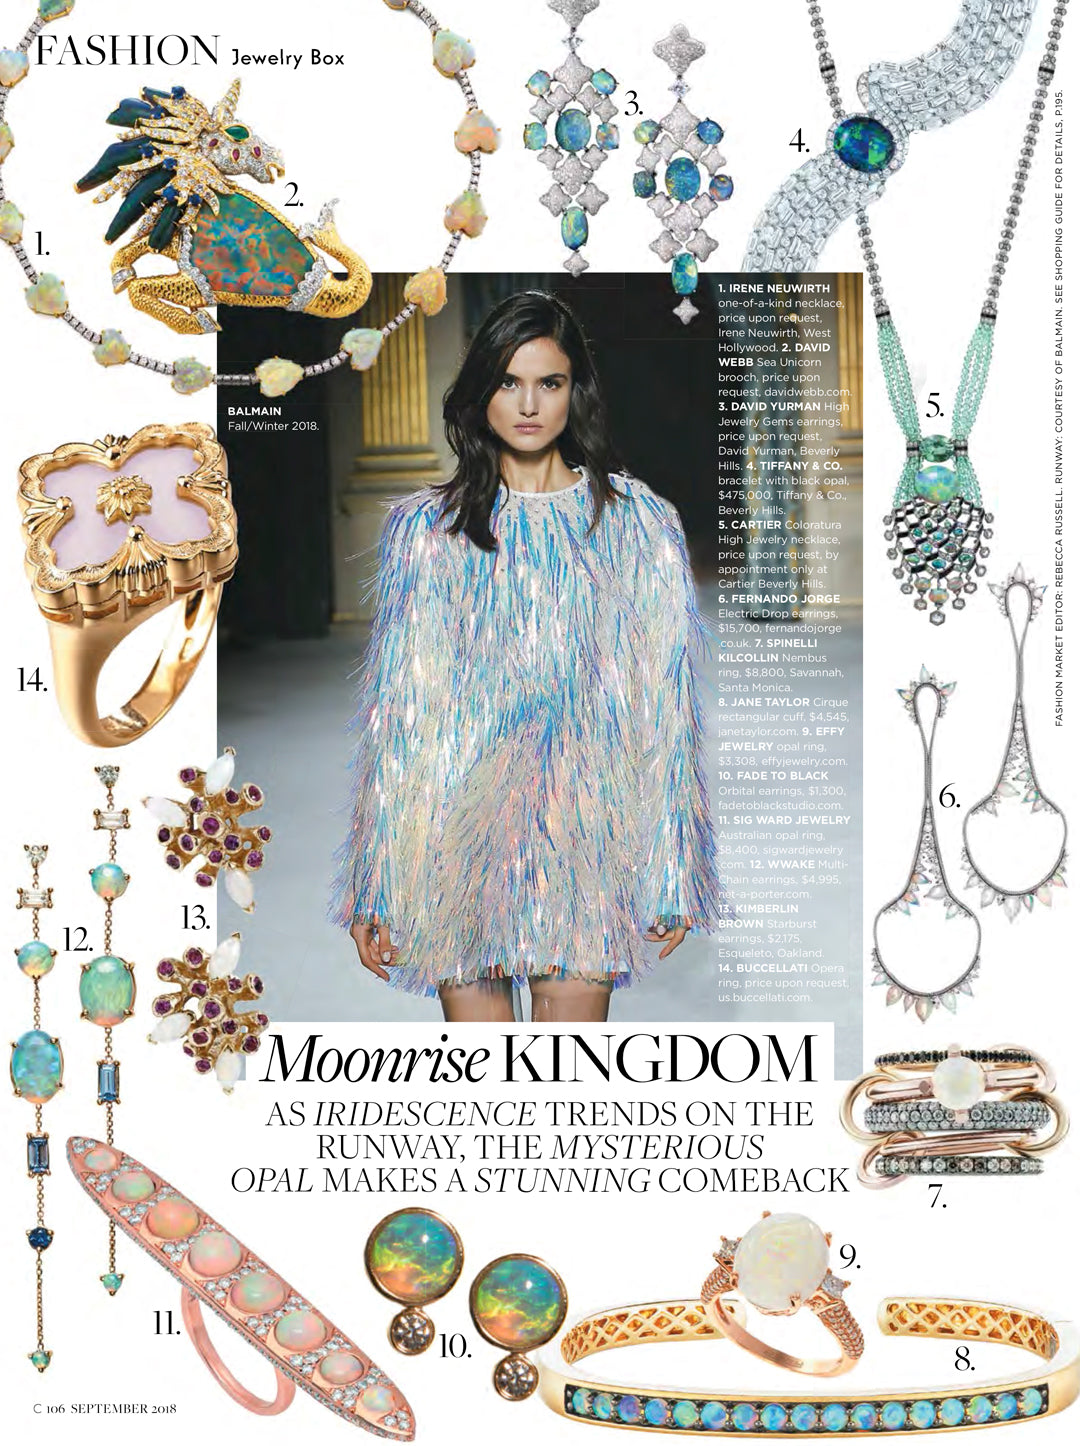 spinelli kilcollin c magazine linked-rings nembus ring opal luxury jewelry